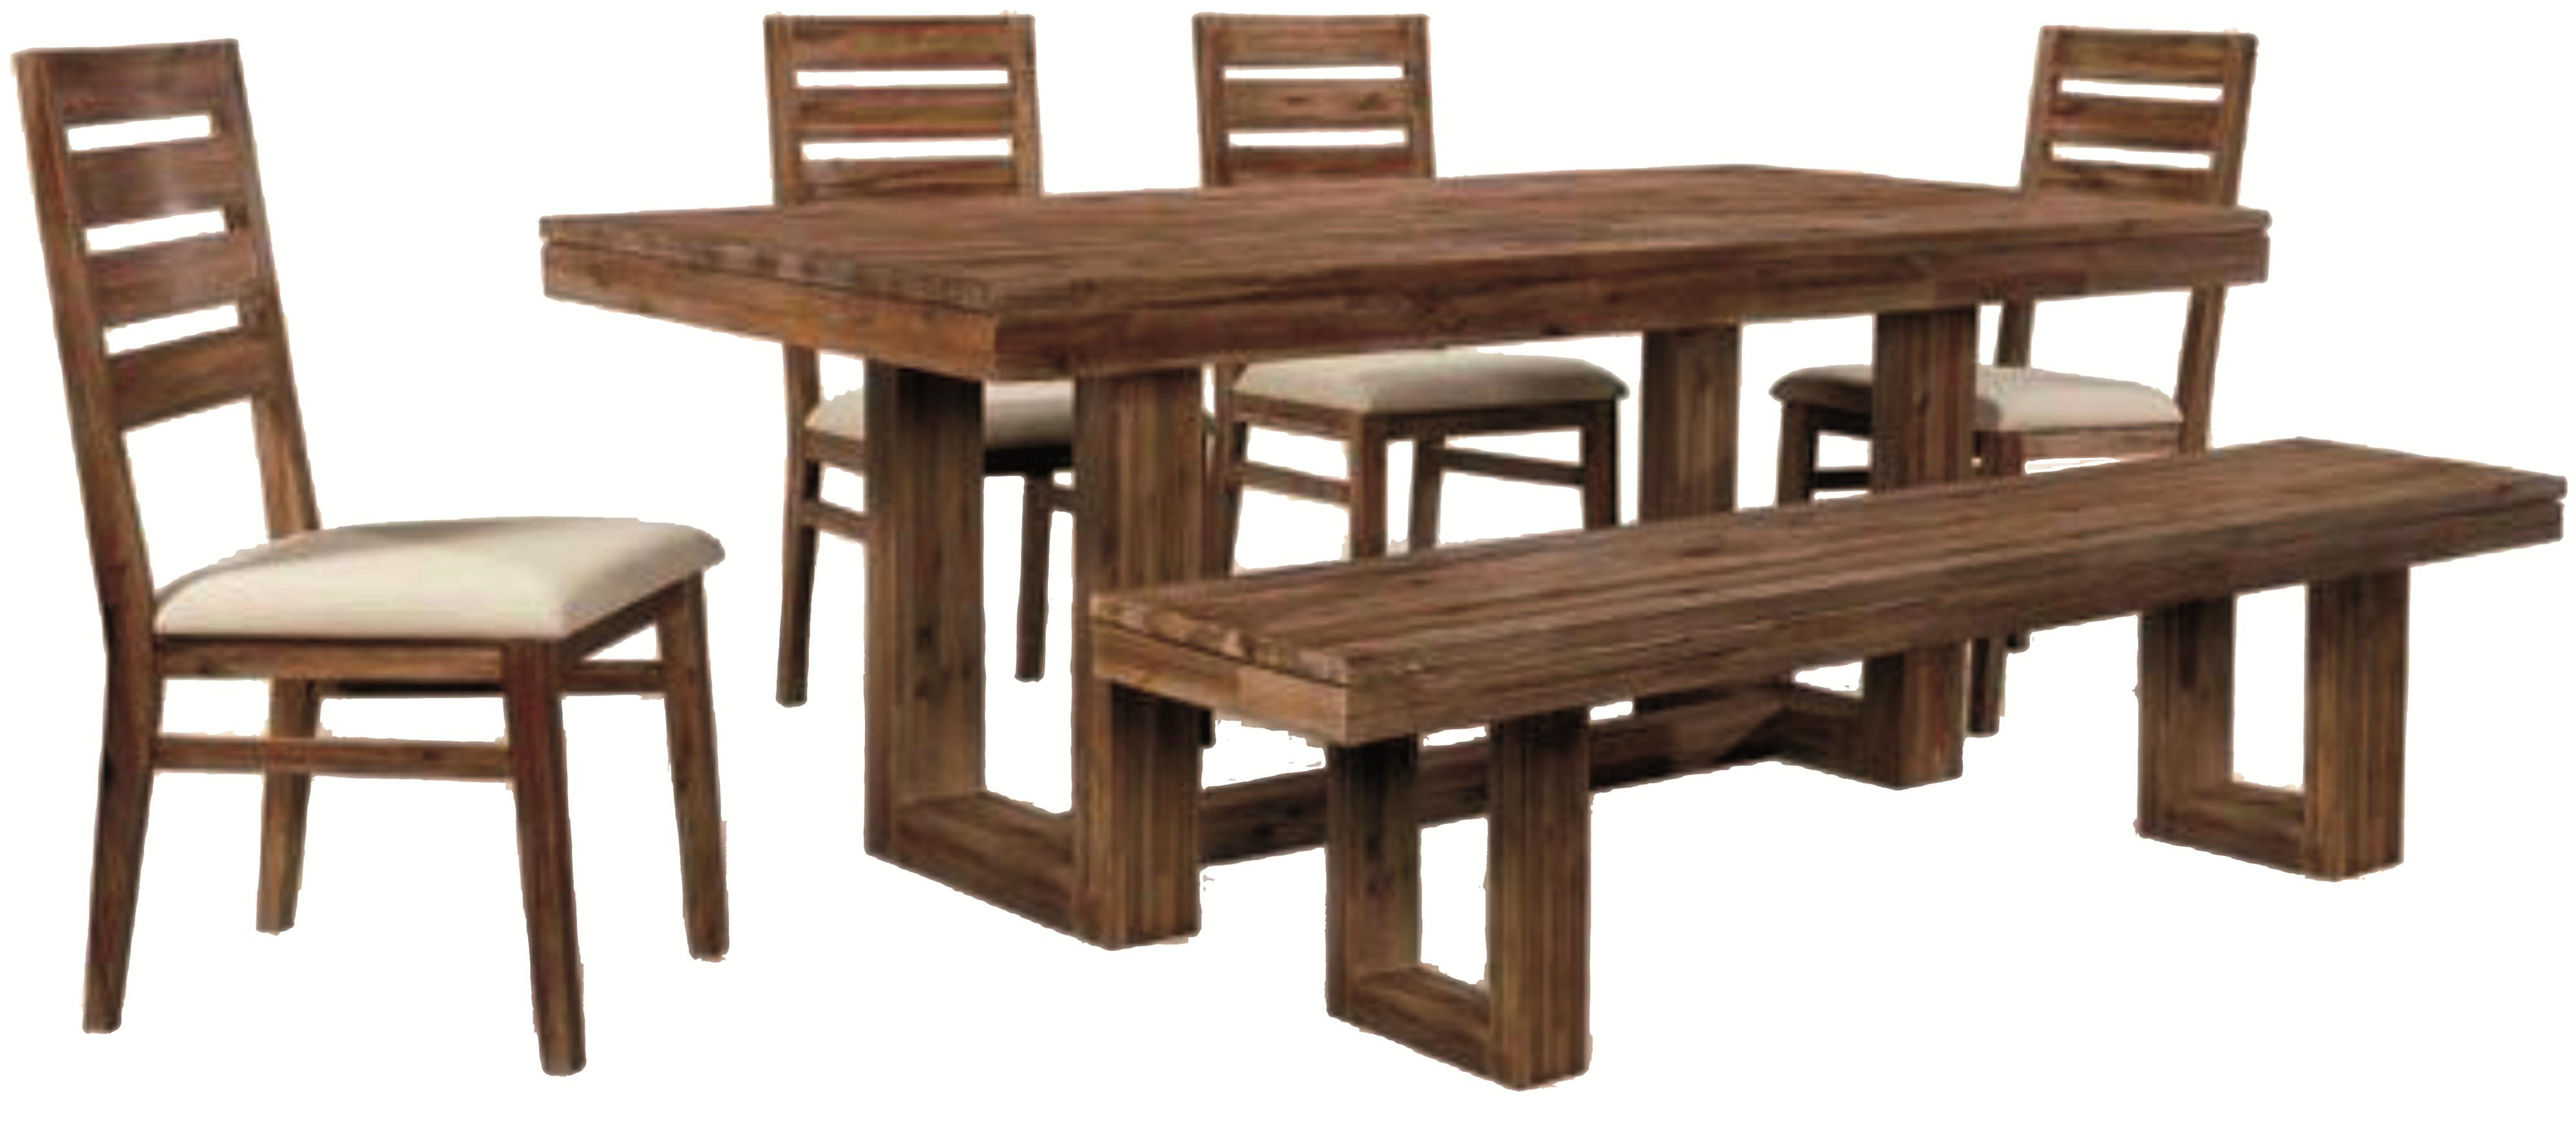 Six piece modern rustic rectangular trestle table with for Dinette set with bench